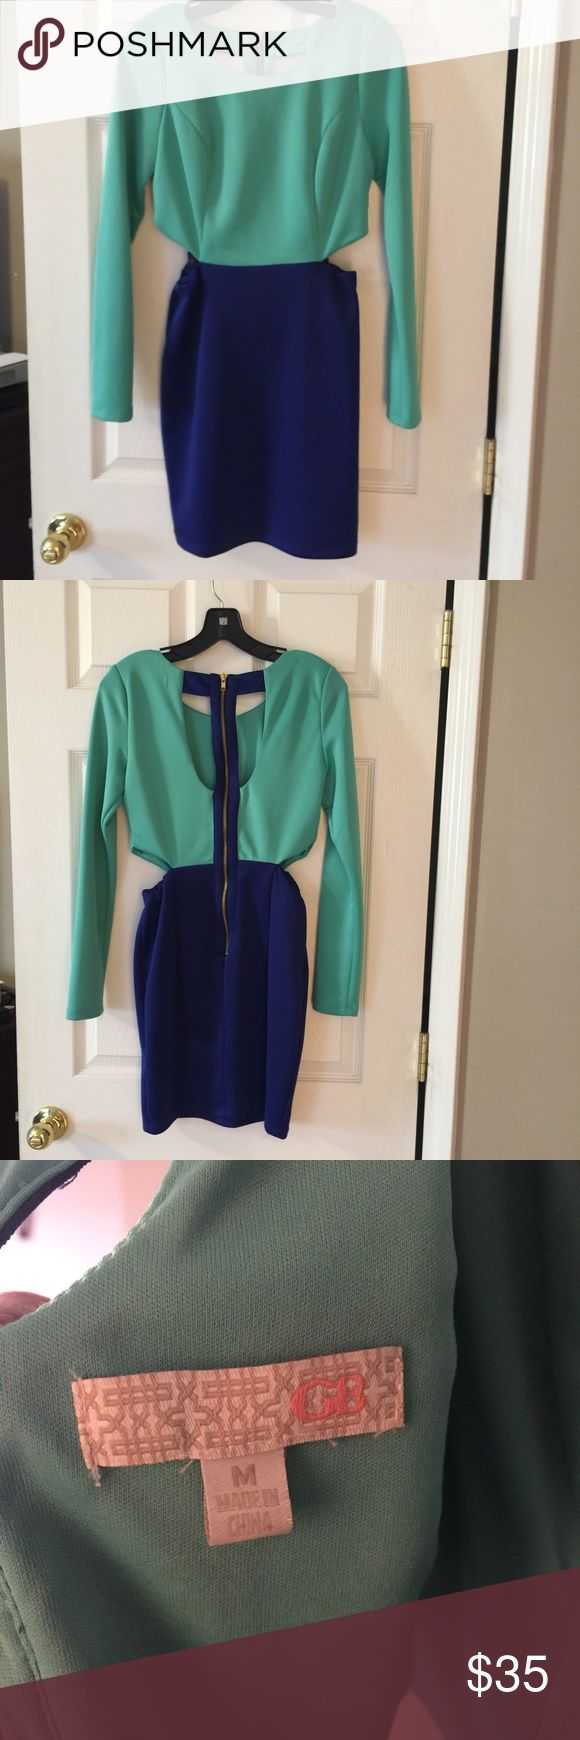 Gianni Bini dress!! So pretty! Fitted dress with cut out sides partially open back, two colors at once, 5 inches above knee or so.. Cute classy party, dress worn once. Gianni Bini Dresses Midi